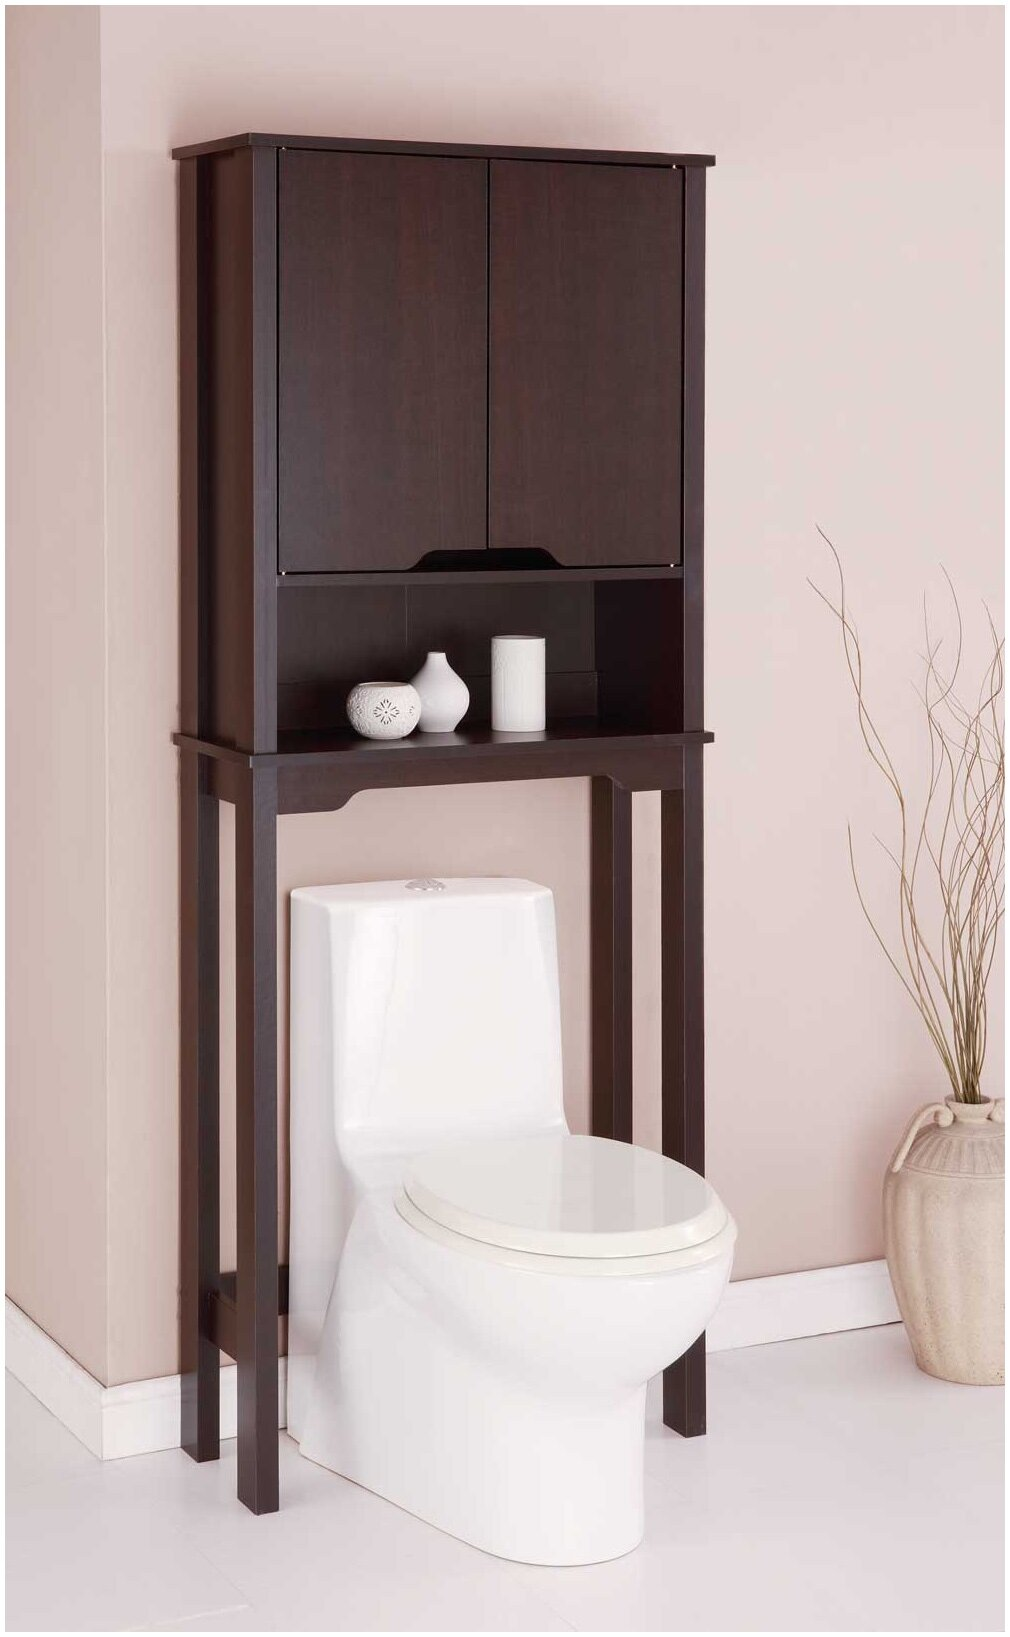 bathroom toilet etagere oak bathroom space saver over. Black Bedroom Furniture Sets. Home Design Ideas